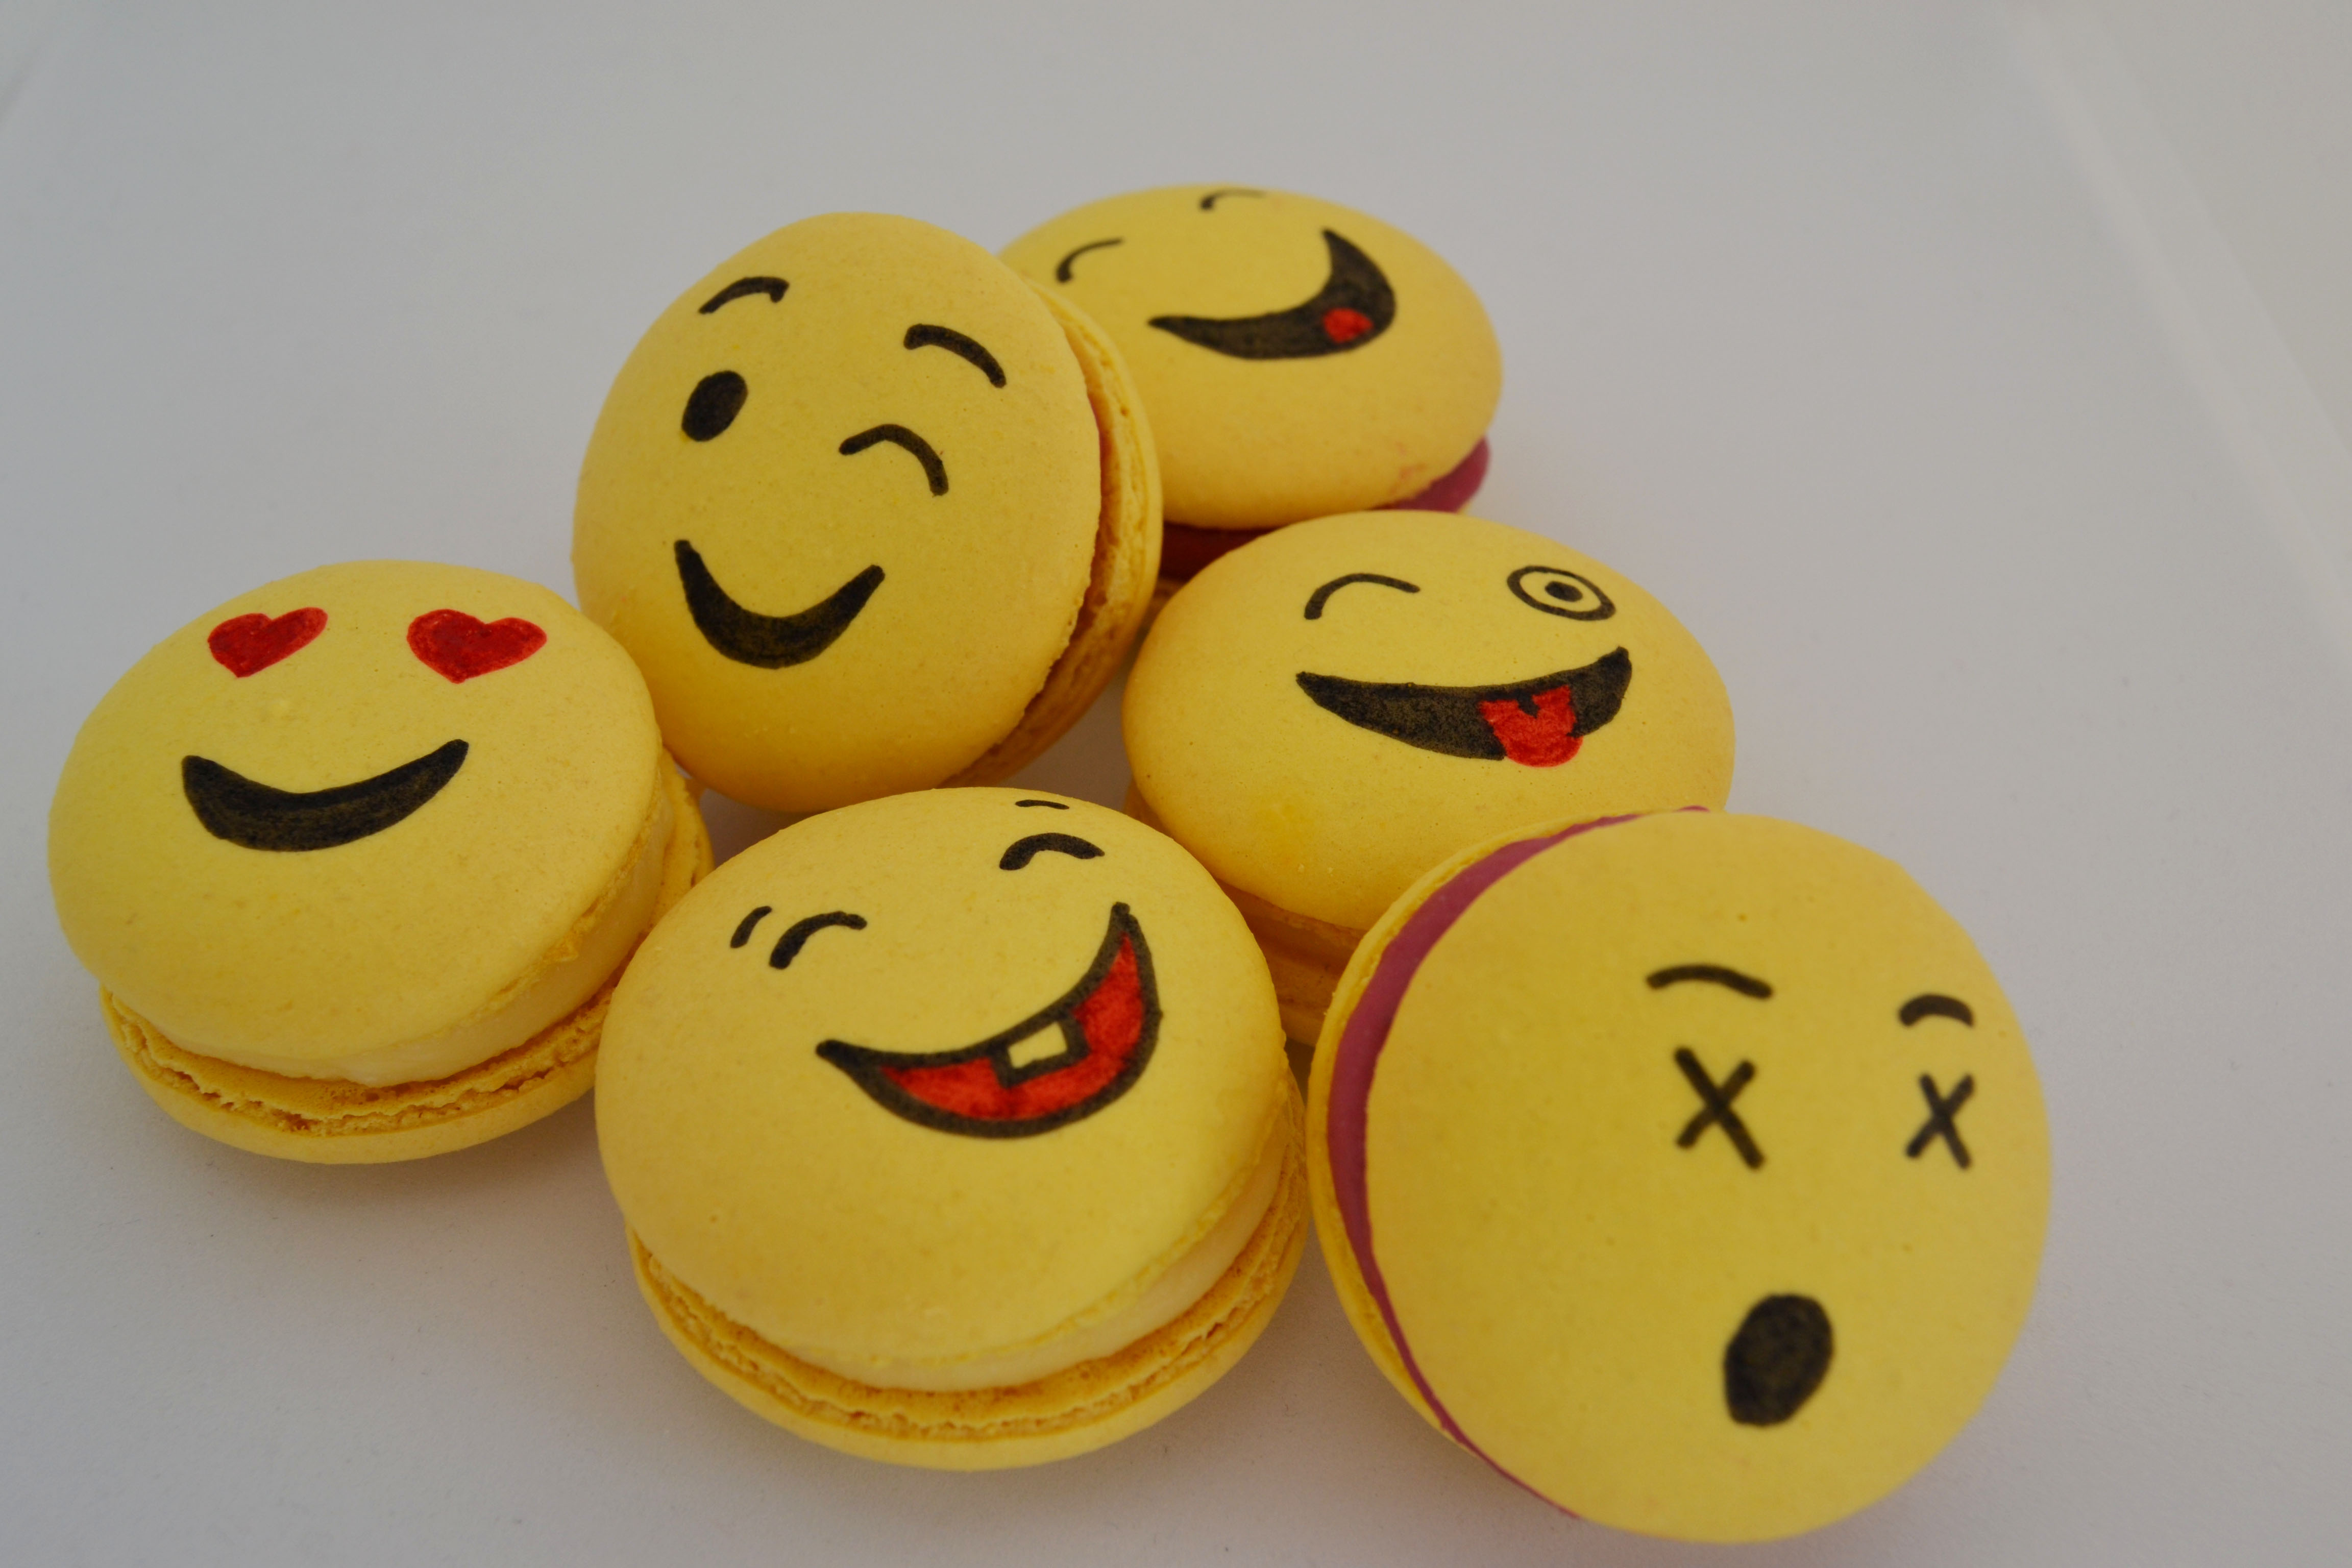 Emoji Macarons 6 Macarons French Macarons Weddings Events Special Occasions Wholesale